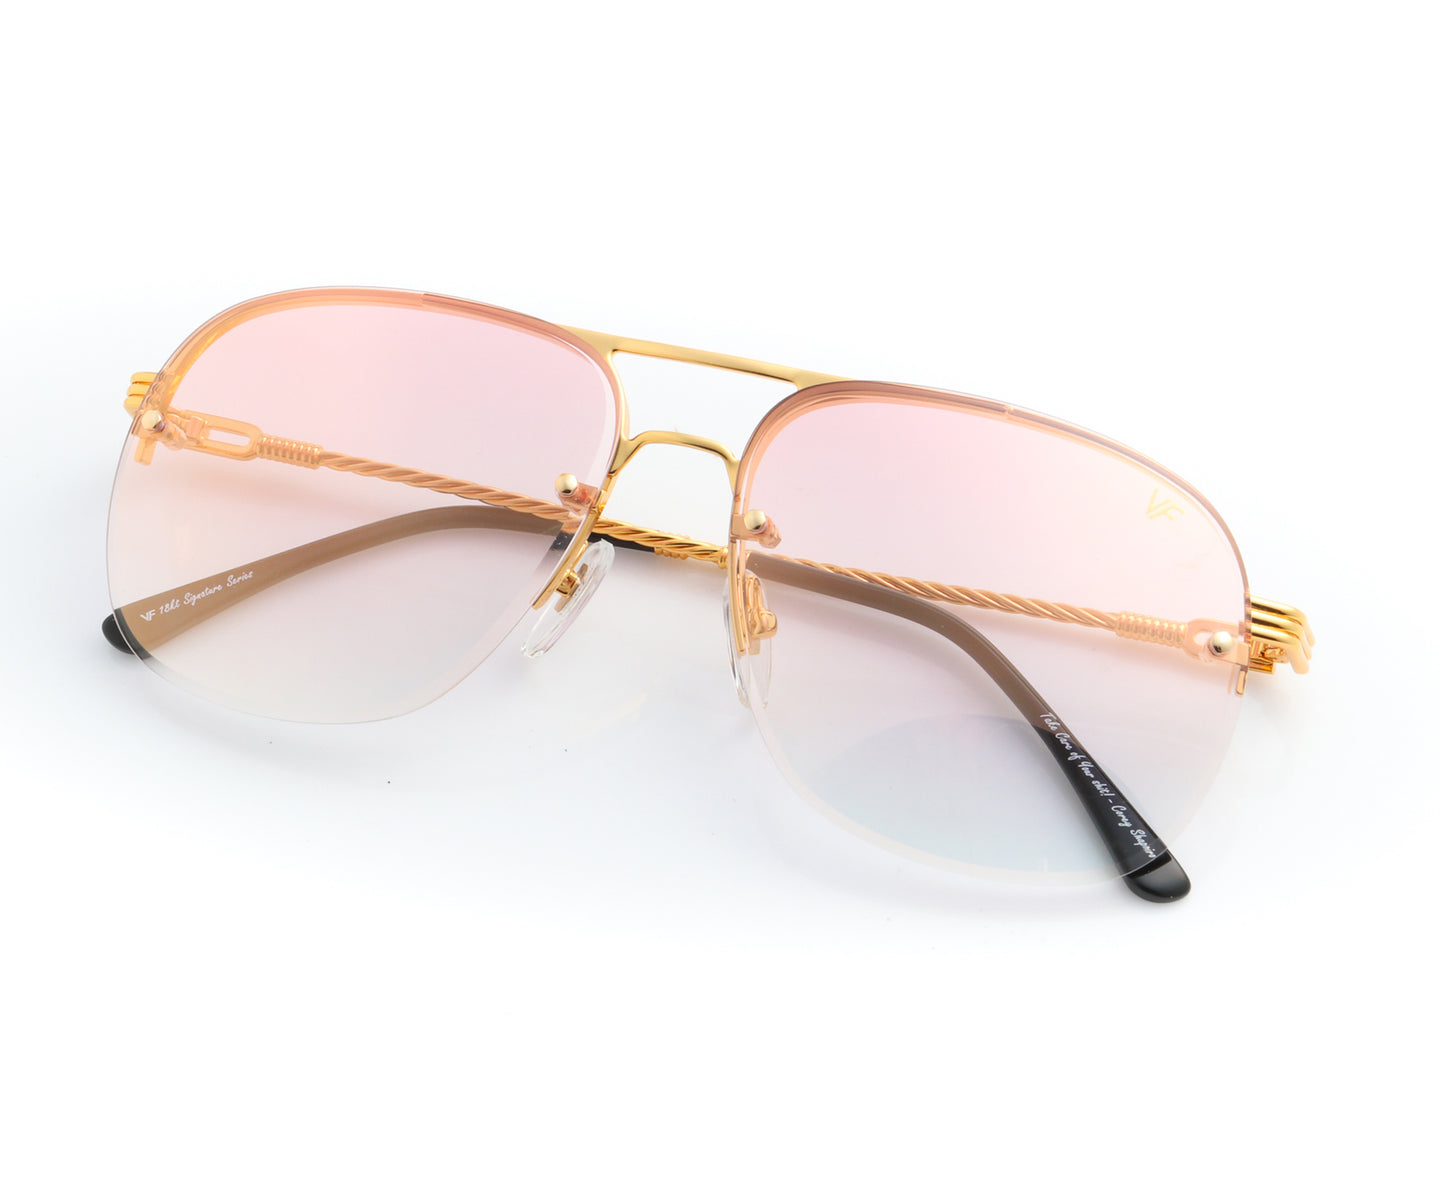 Snatch Bevel 18KT Drill Mount Gold (Pastel Pink), VF Drill Mount , glasses frames, eyeglasses online, eyeglass frames, mens glasses, womens glasses, buy glasses online, designer eyeglasses, vintage sunglasses, retro sunglasses, vintage glasses, sunglass, eyeglass, glasses, lens, vintage frames company, vf